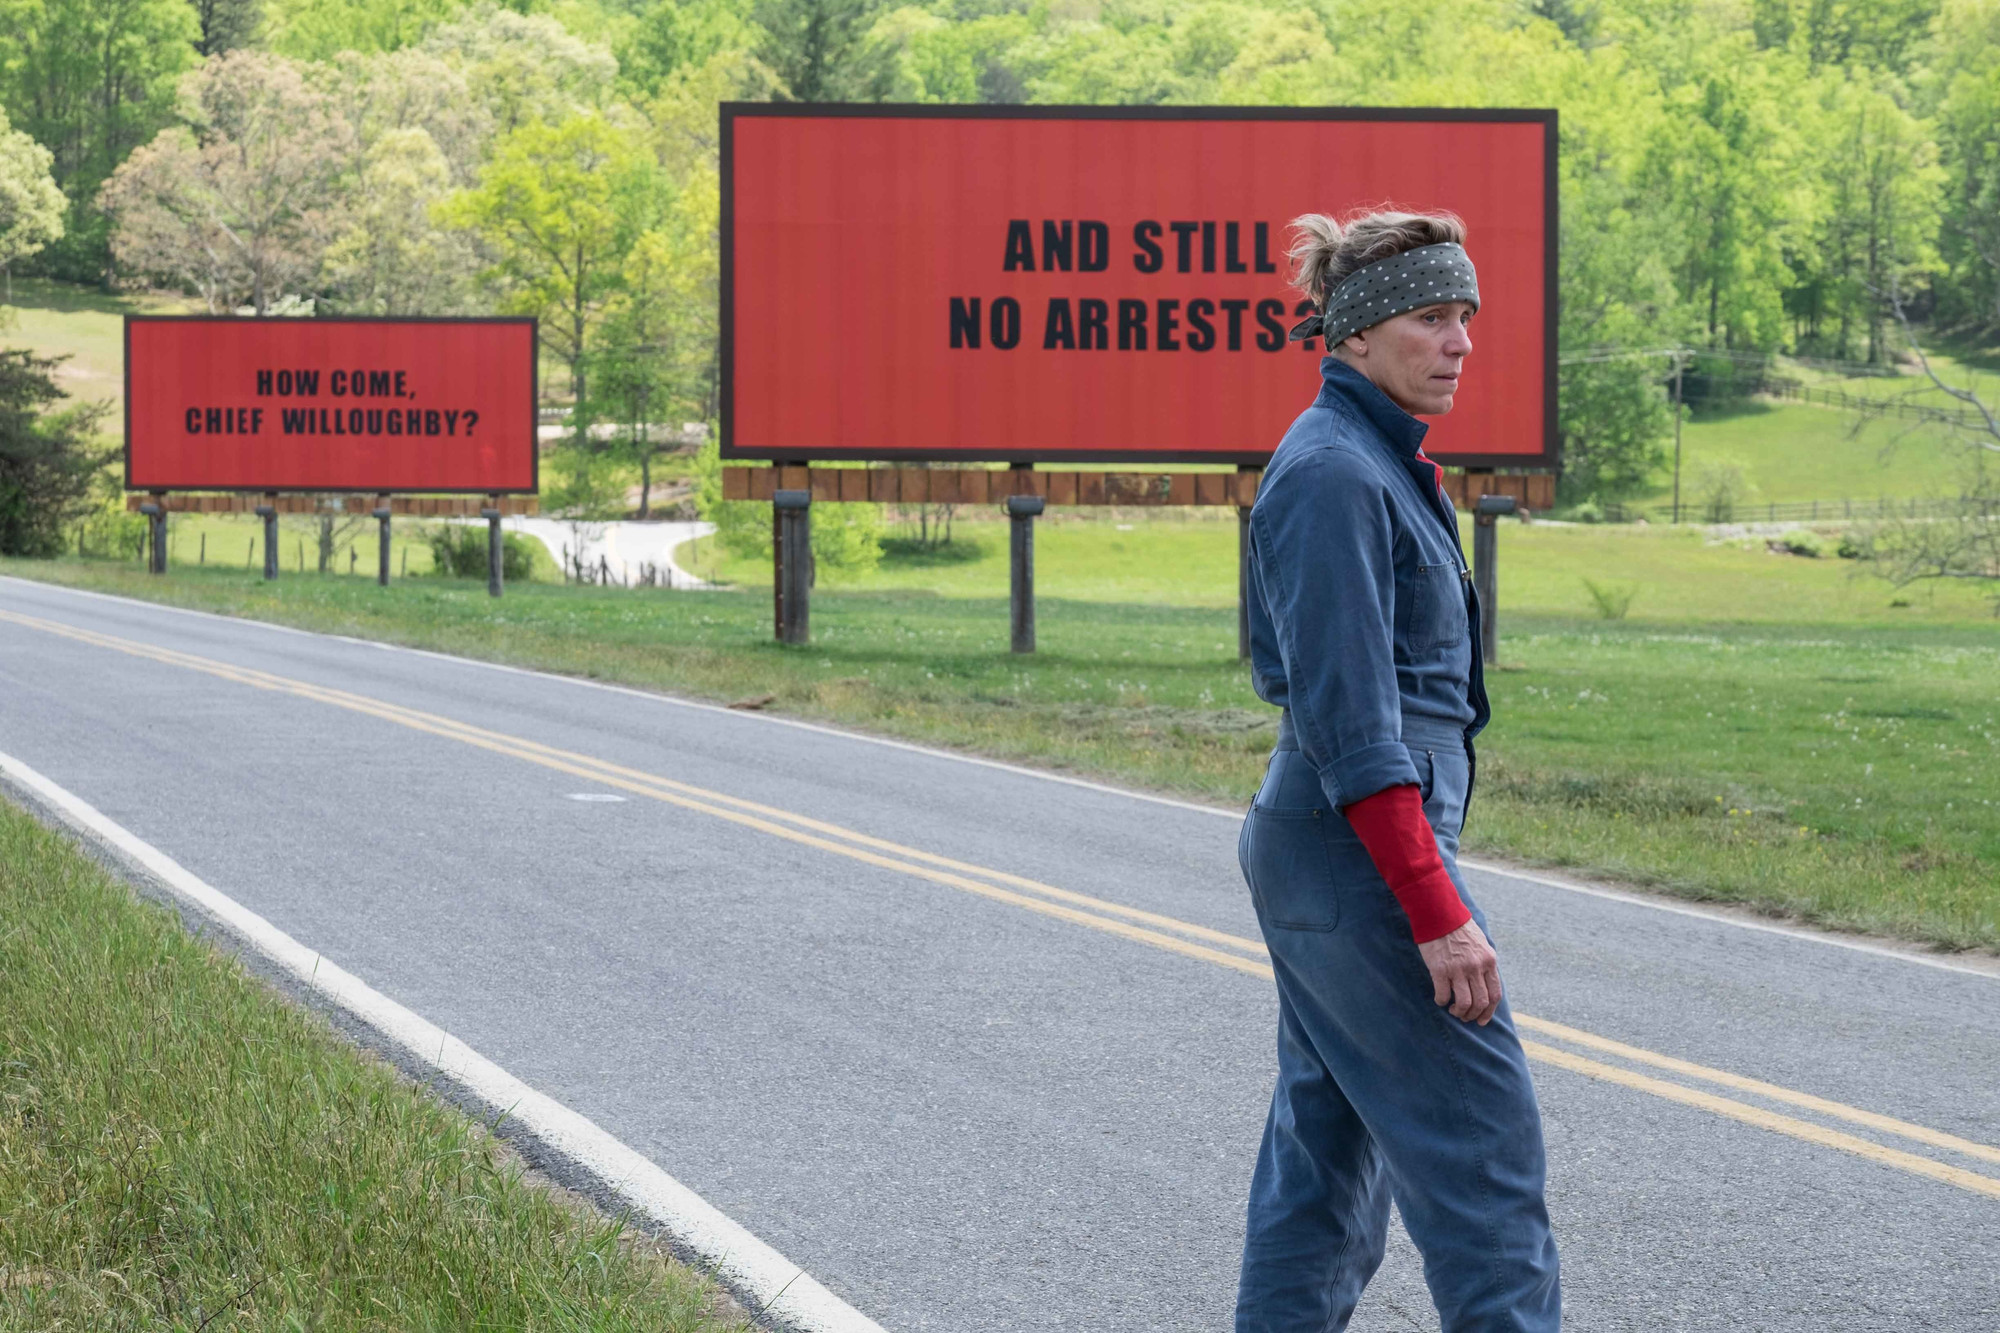 Three Billboards Outside Ebbing, Missouri. 2017. USA. Directed by Martin McDonagh. Courtesy of Fox Searchlight